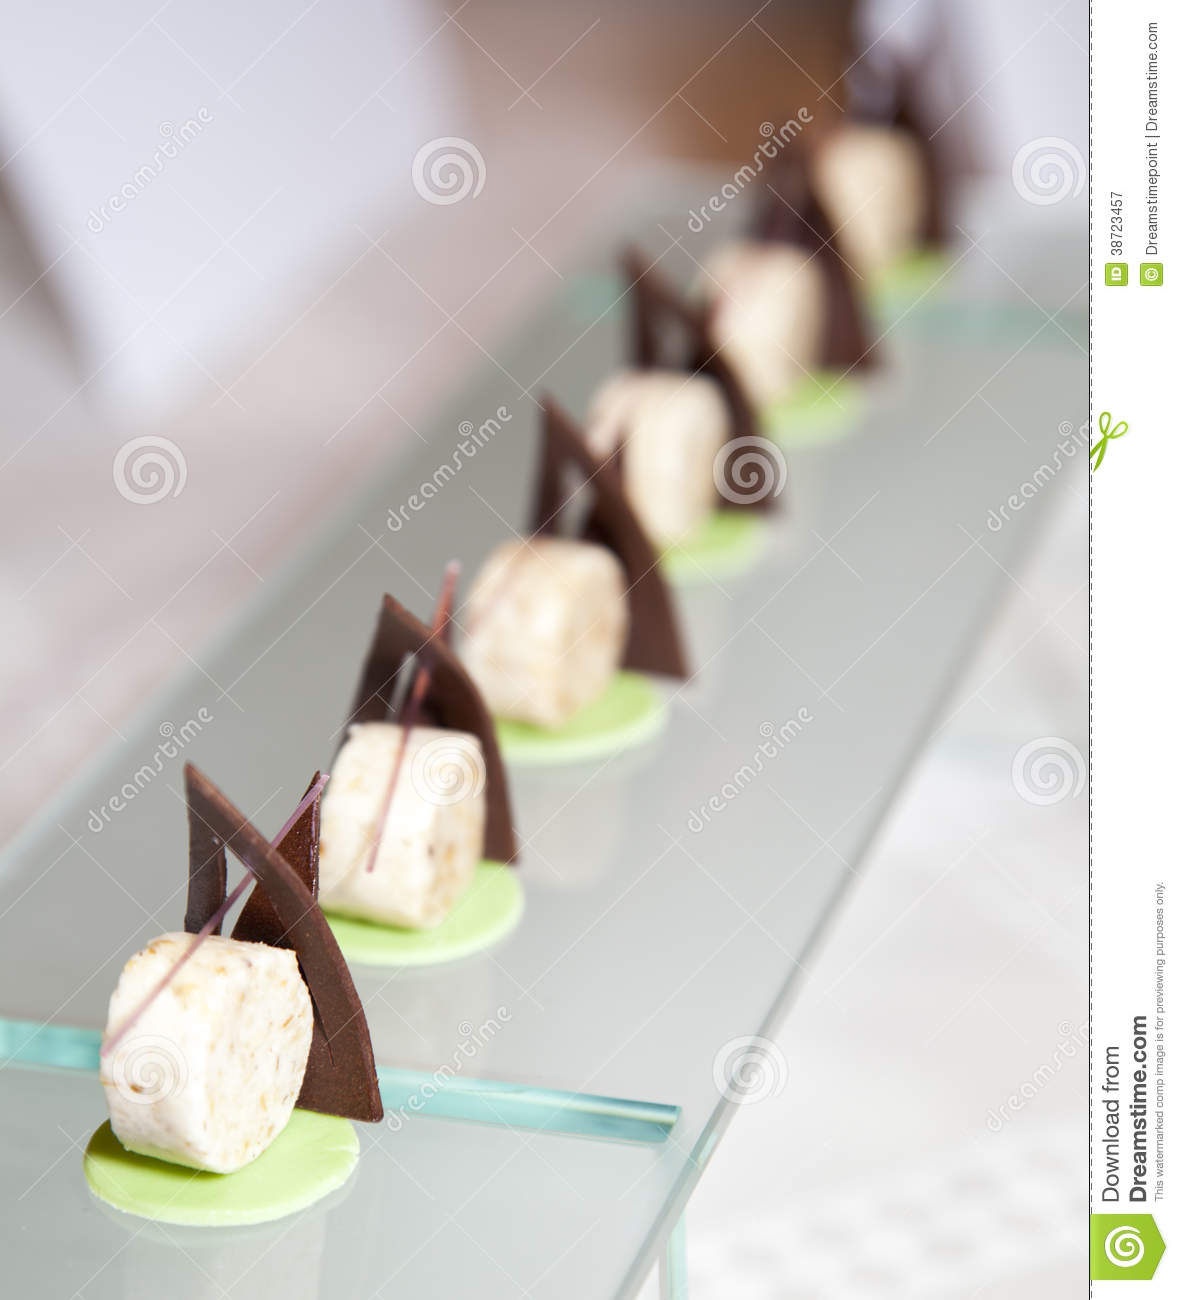 Delicious Modern Decorated Sweet Dessert Stock Image Image Of